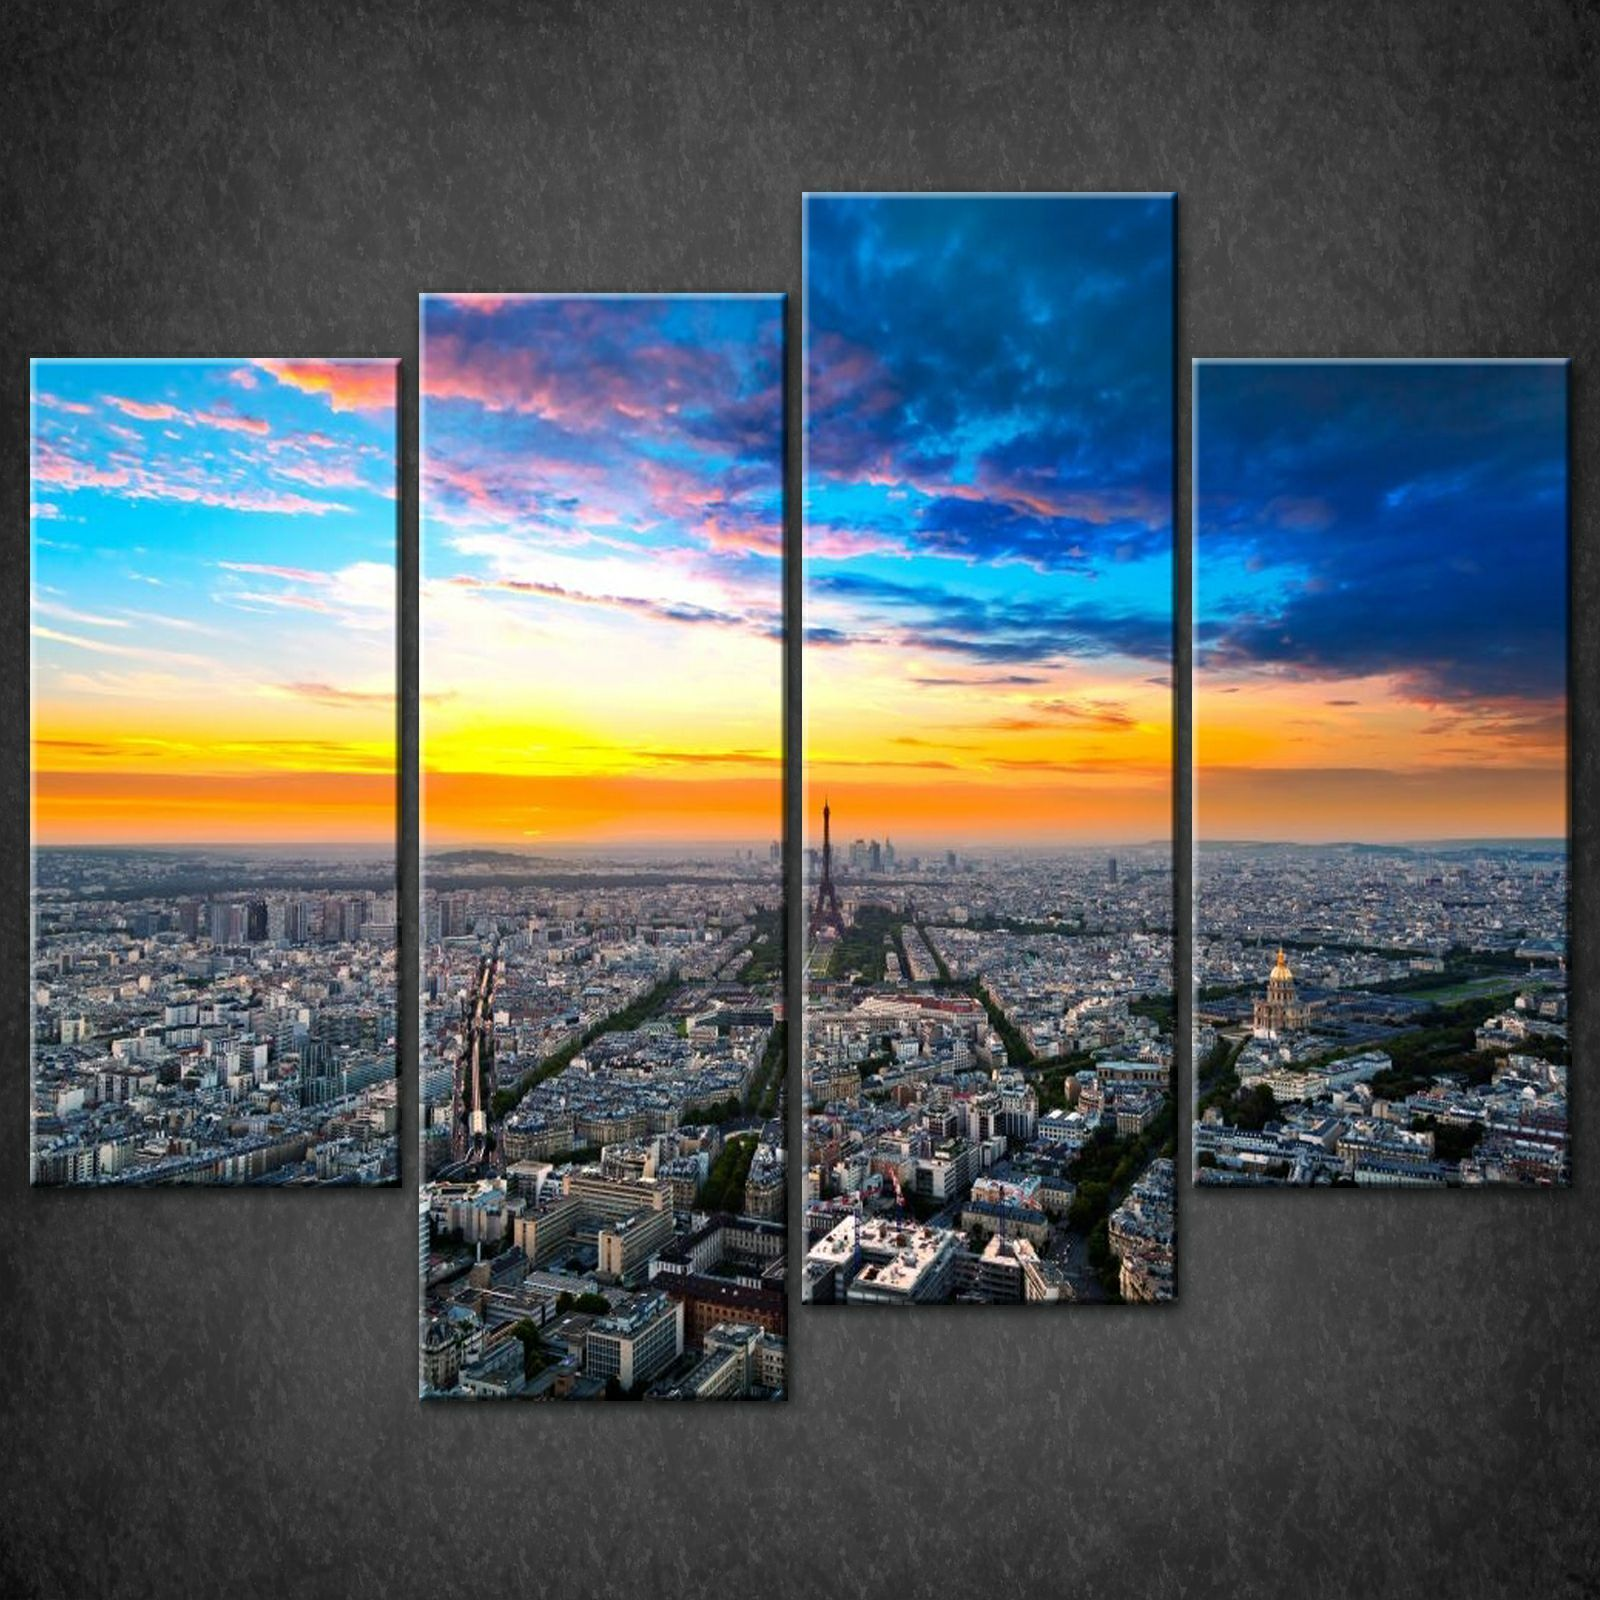 Large Framed Wall Art New York City Landscape Sunset: Canvas Print Pictures. High Quality, Handmade, Free Next